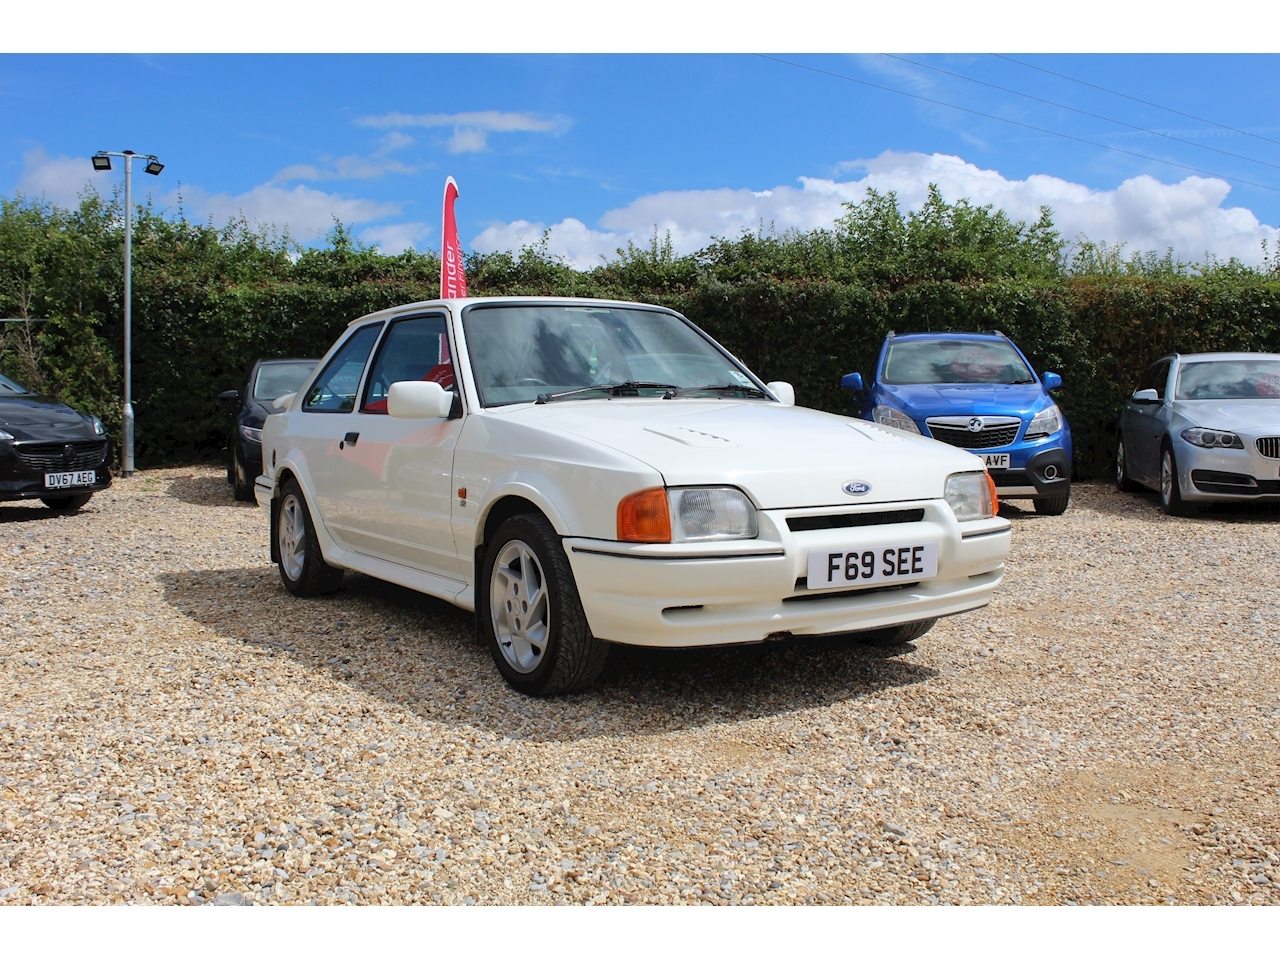 Ford Escort RS Hatchback 1.6 Manual Petrol